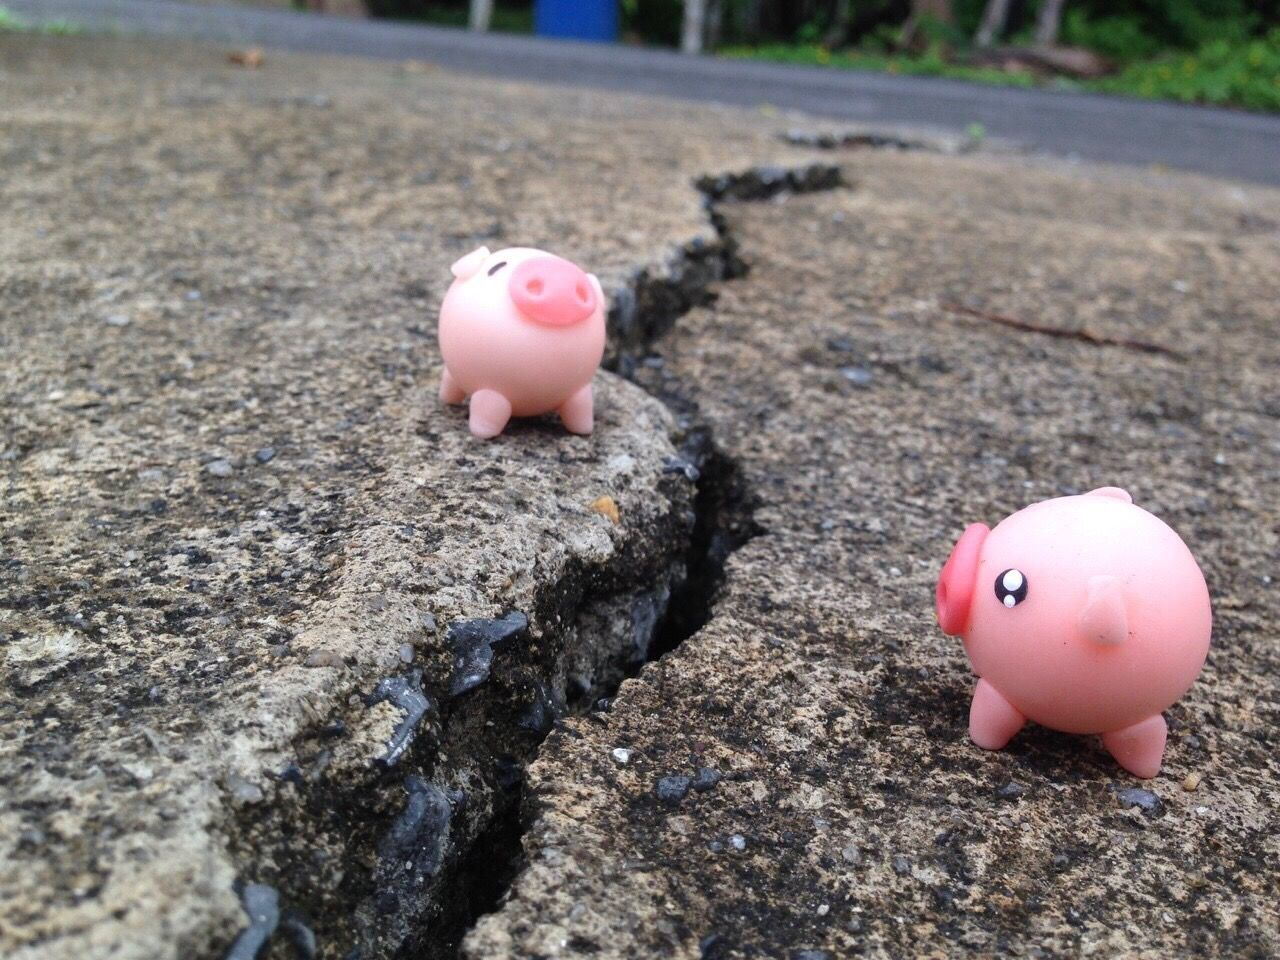 Separation Separate Earthquake Focus On Foreground No People Close-up Day Eggshell Outdoors Piggy Bank Blackground Wallpaper Broken Heart Broken Obstruction Barrier